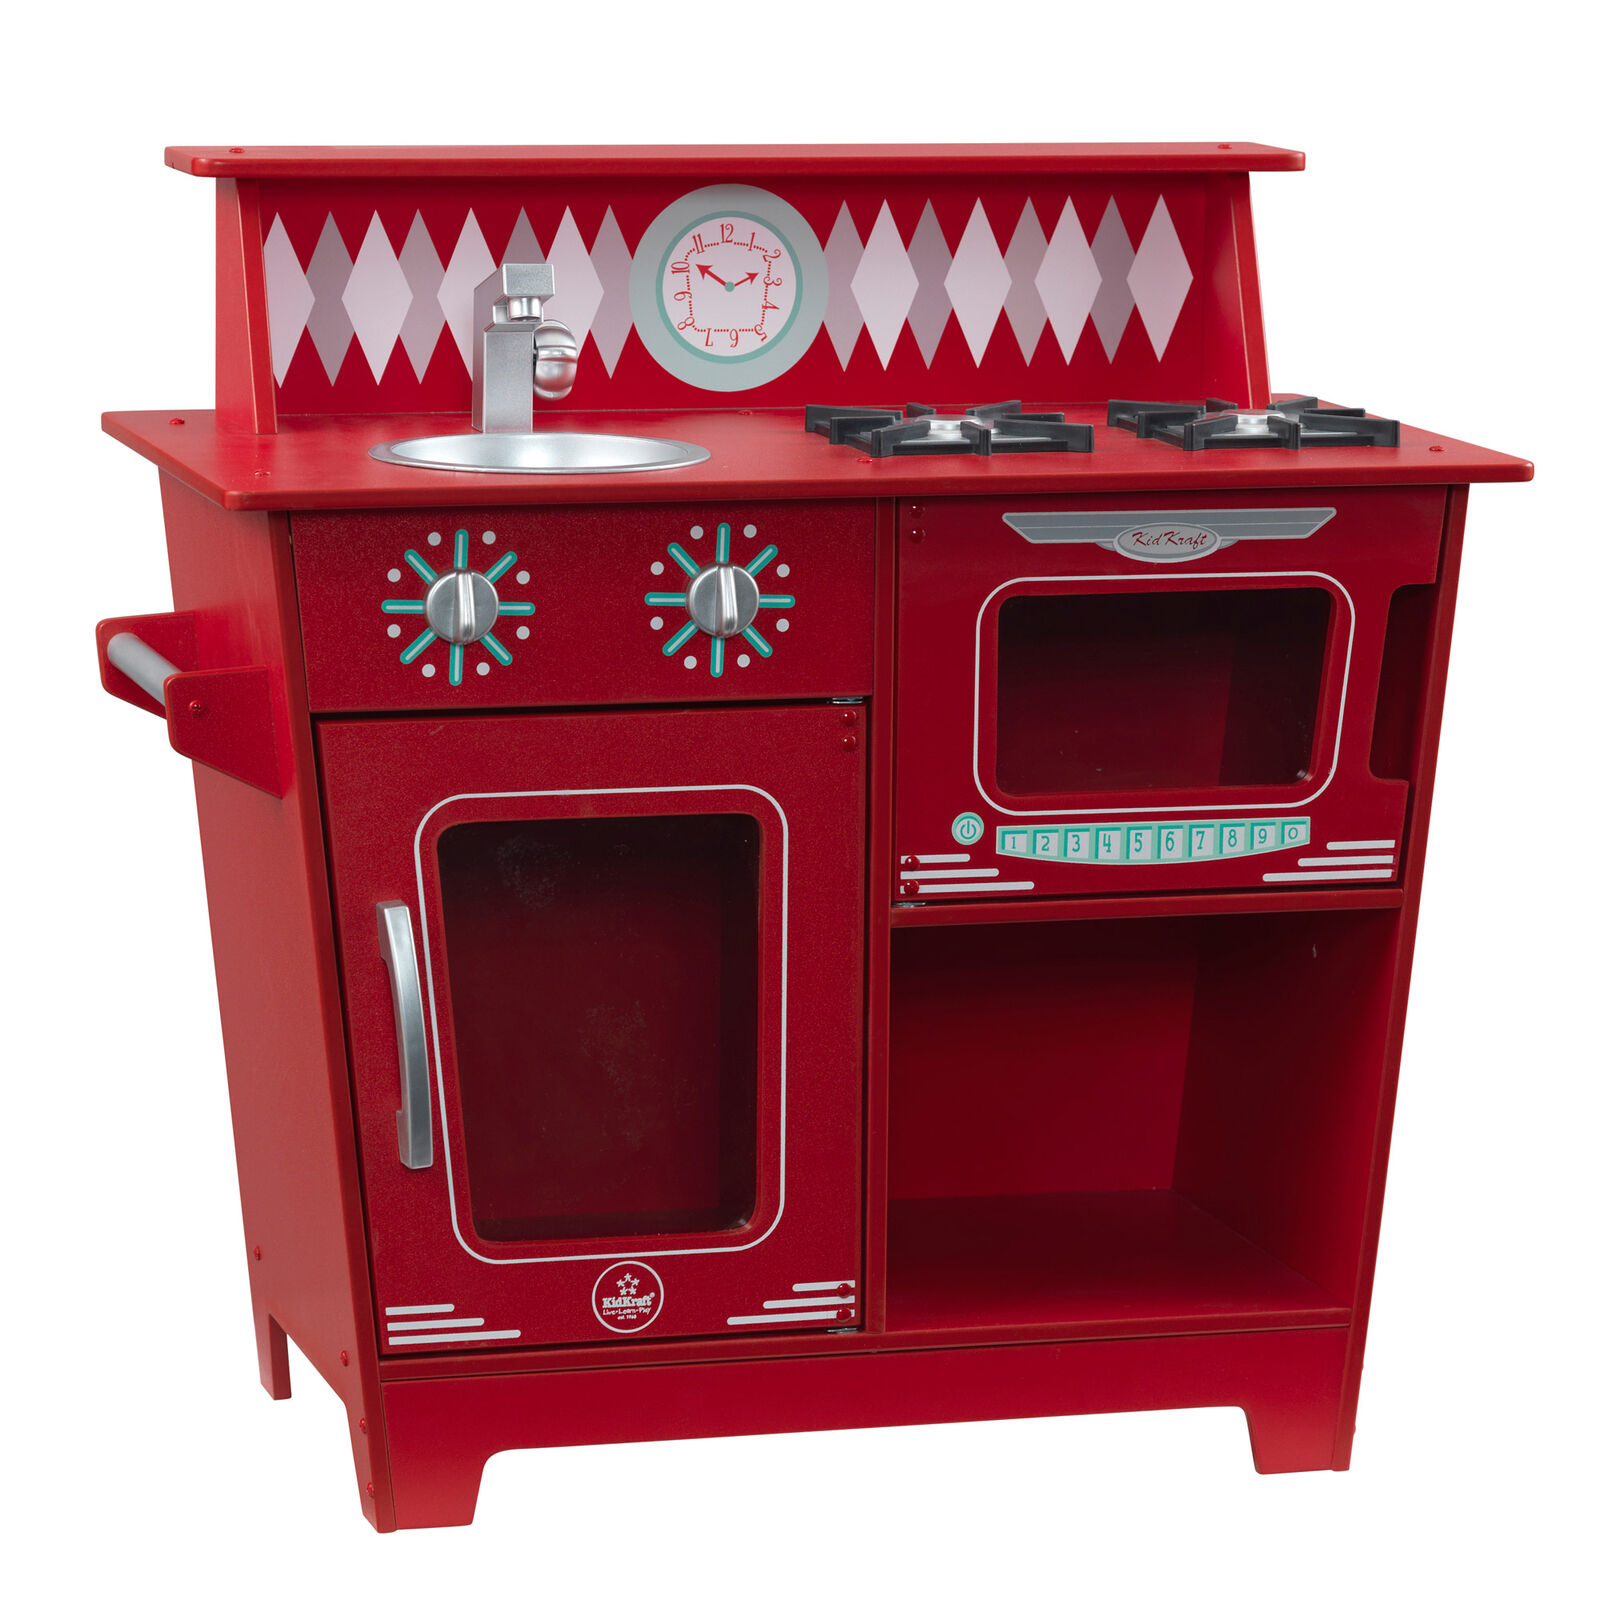 Kidkraft Classic Wooden Pretend Play Cooking Kitchenette Toy Set For Kids Red Brand New